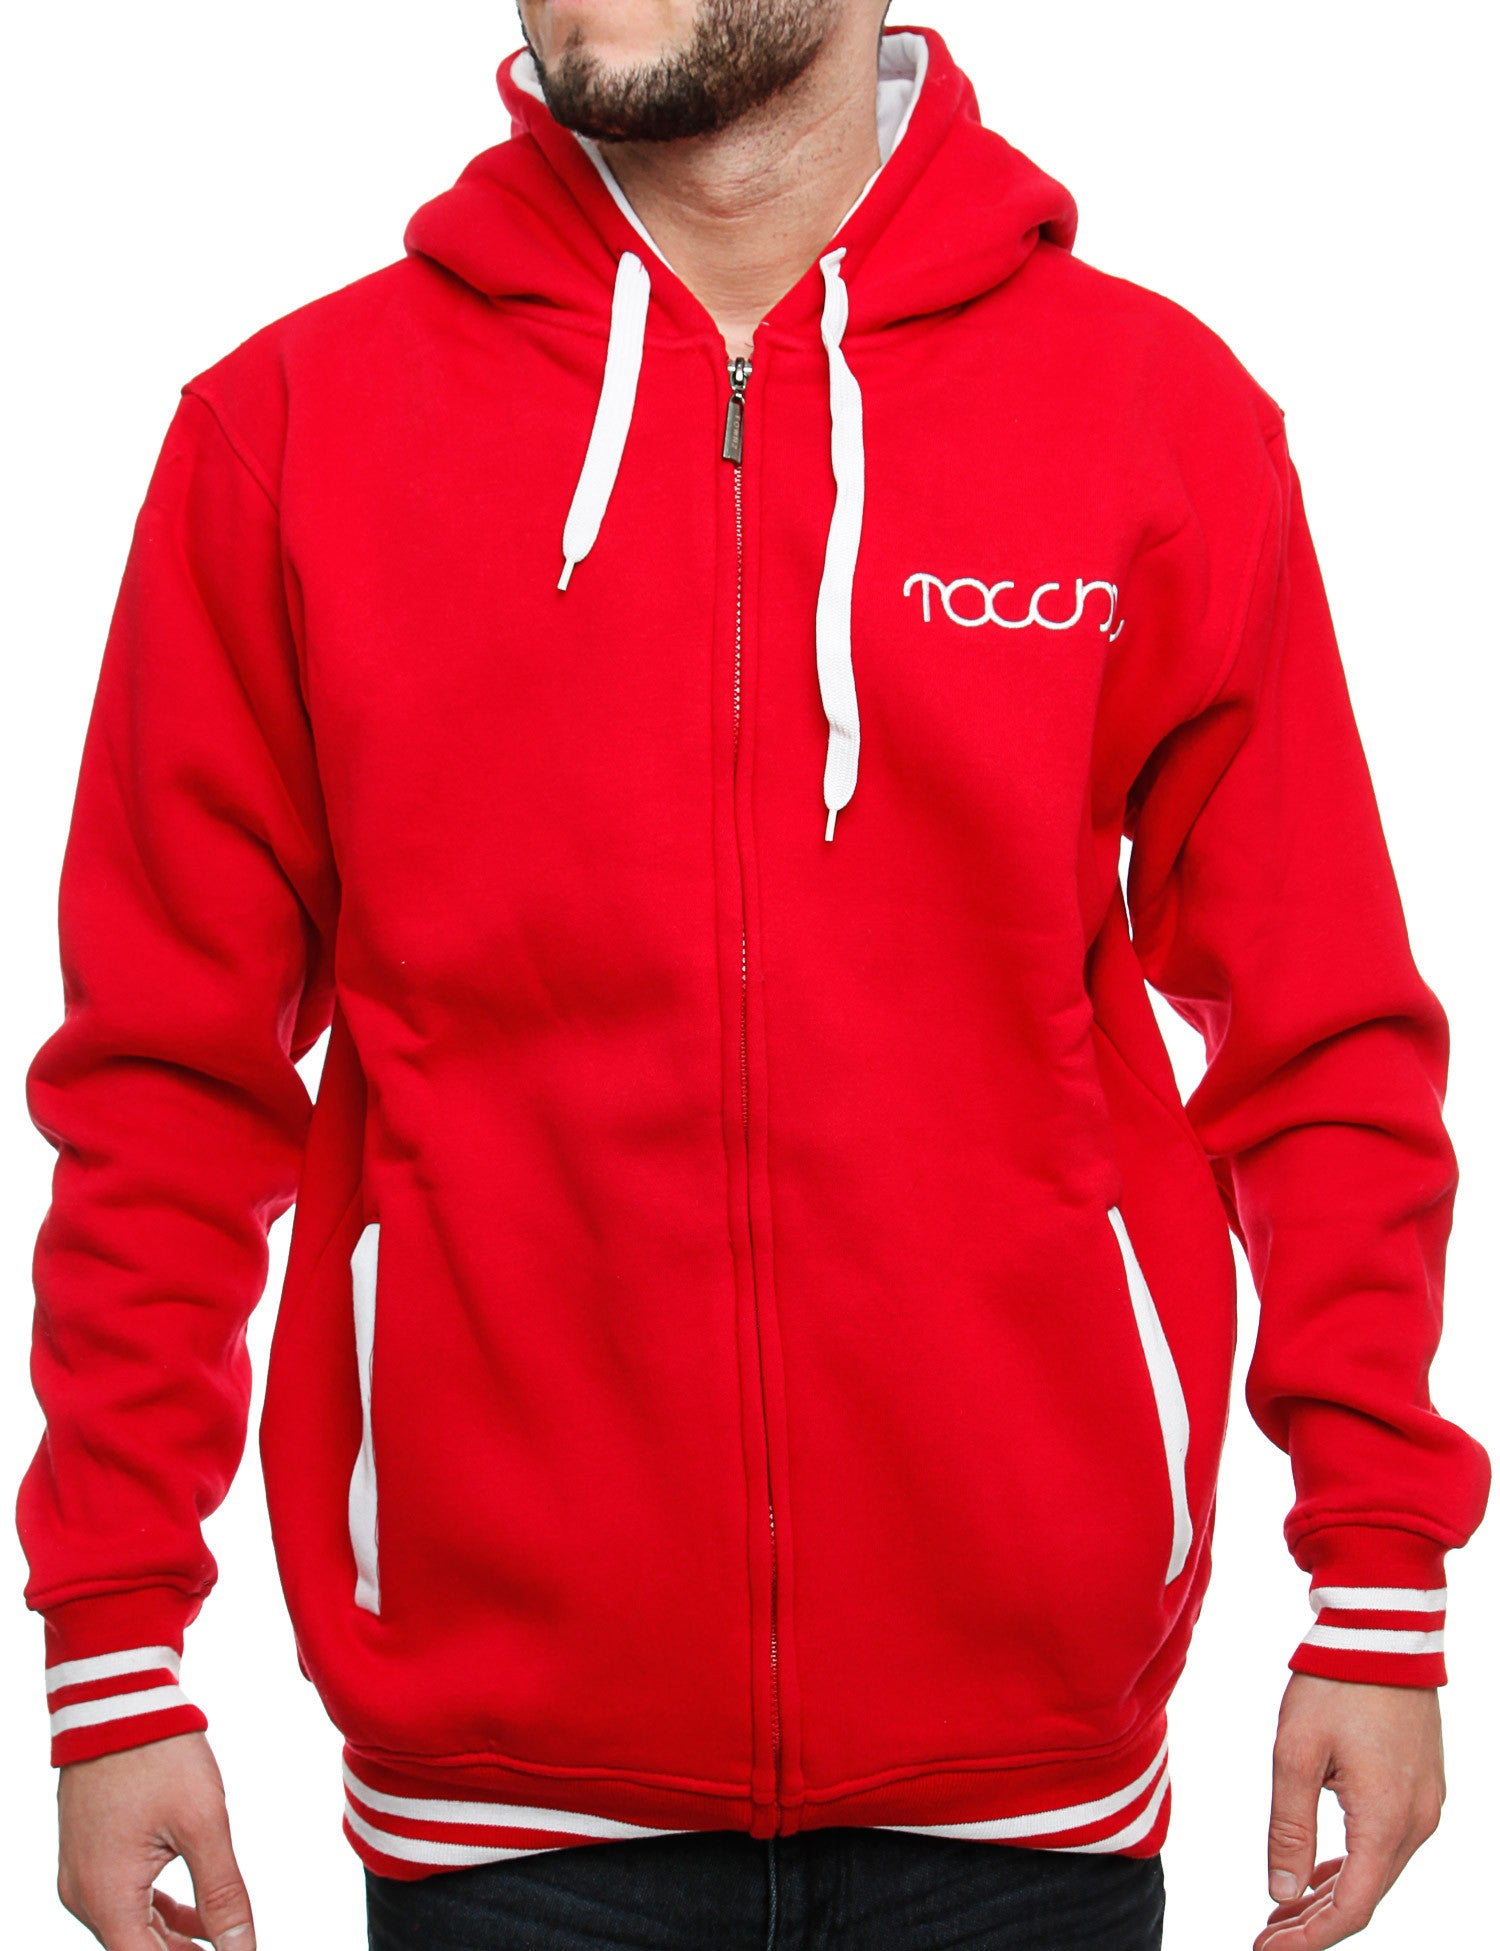 Townz Zip Hoody RWD-151B Red